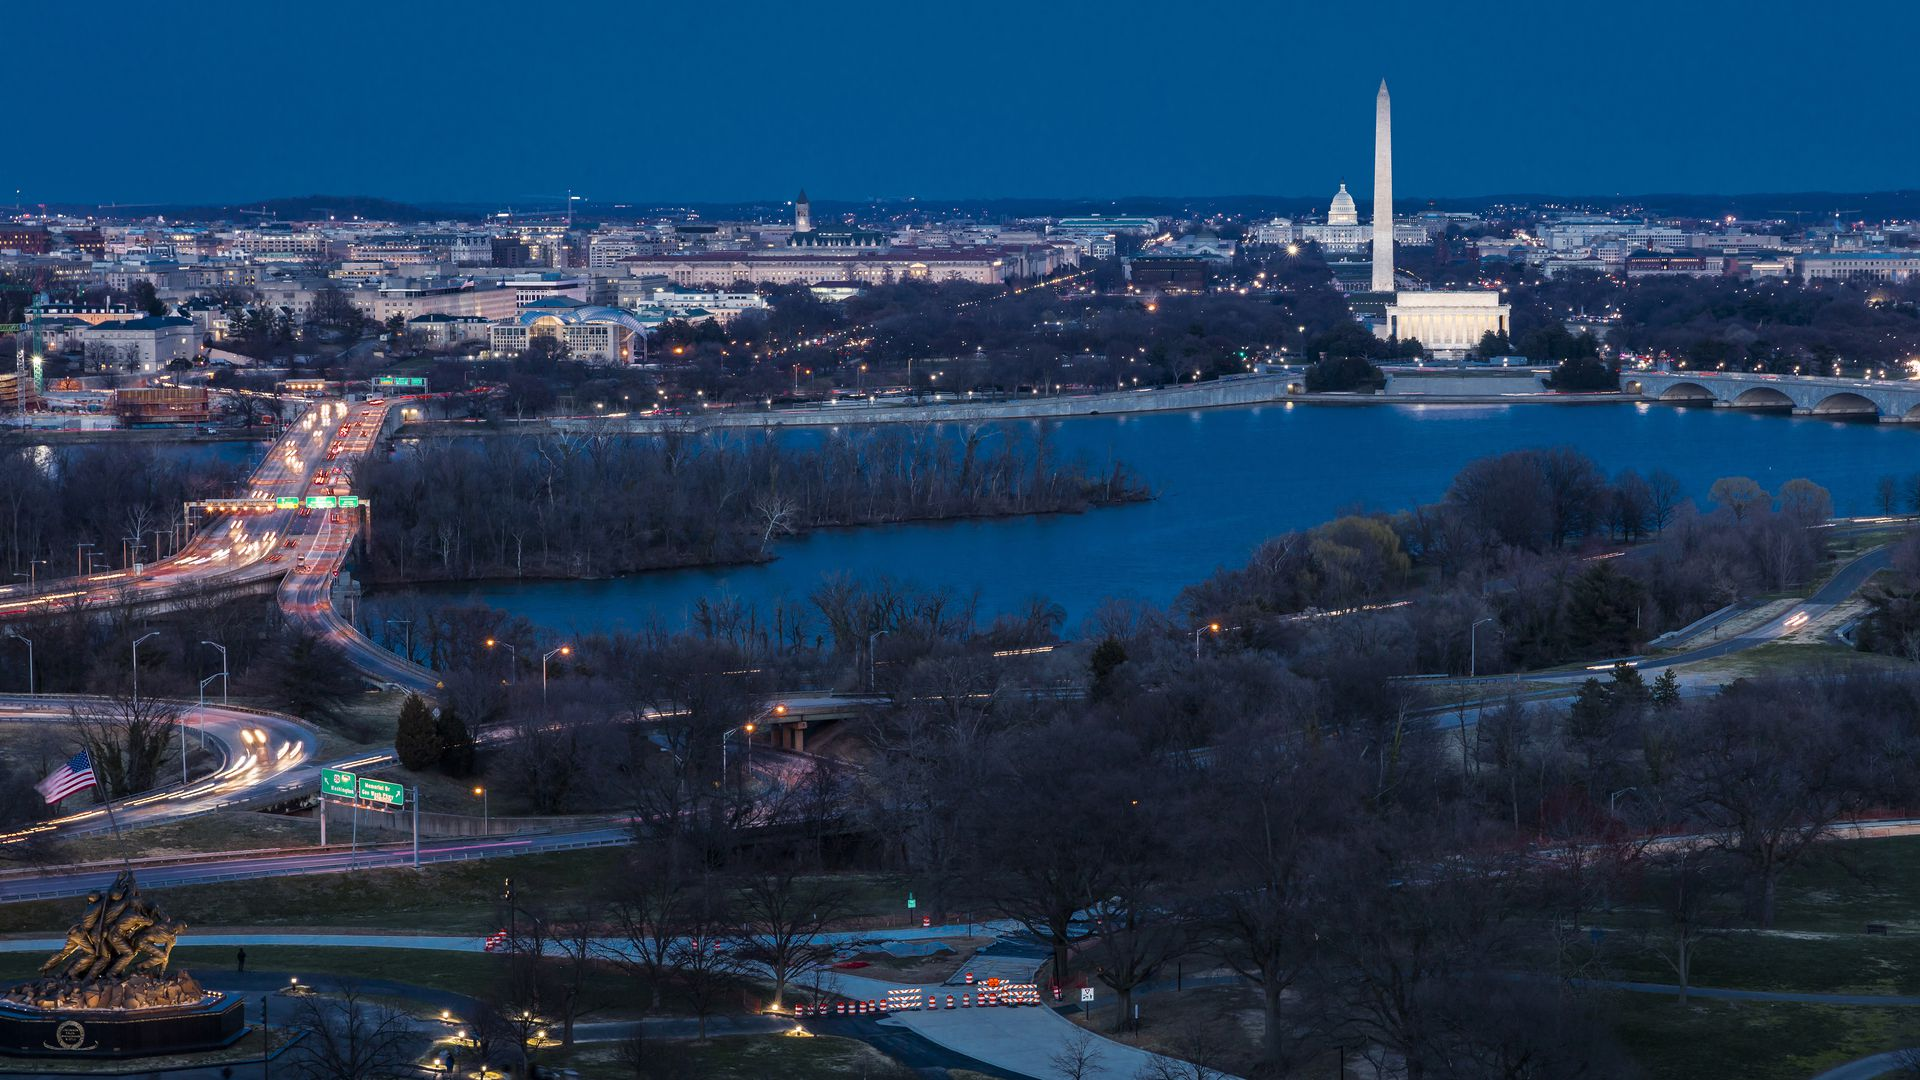 WAshington D.C. aerial view of the city, potomac and anacostia rivers.